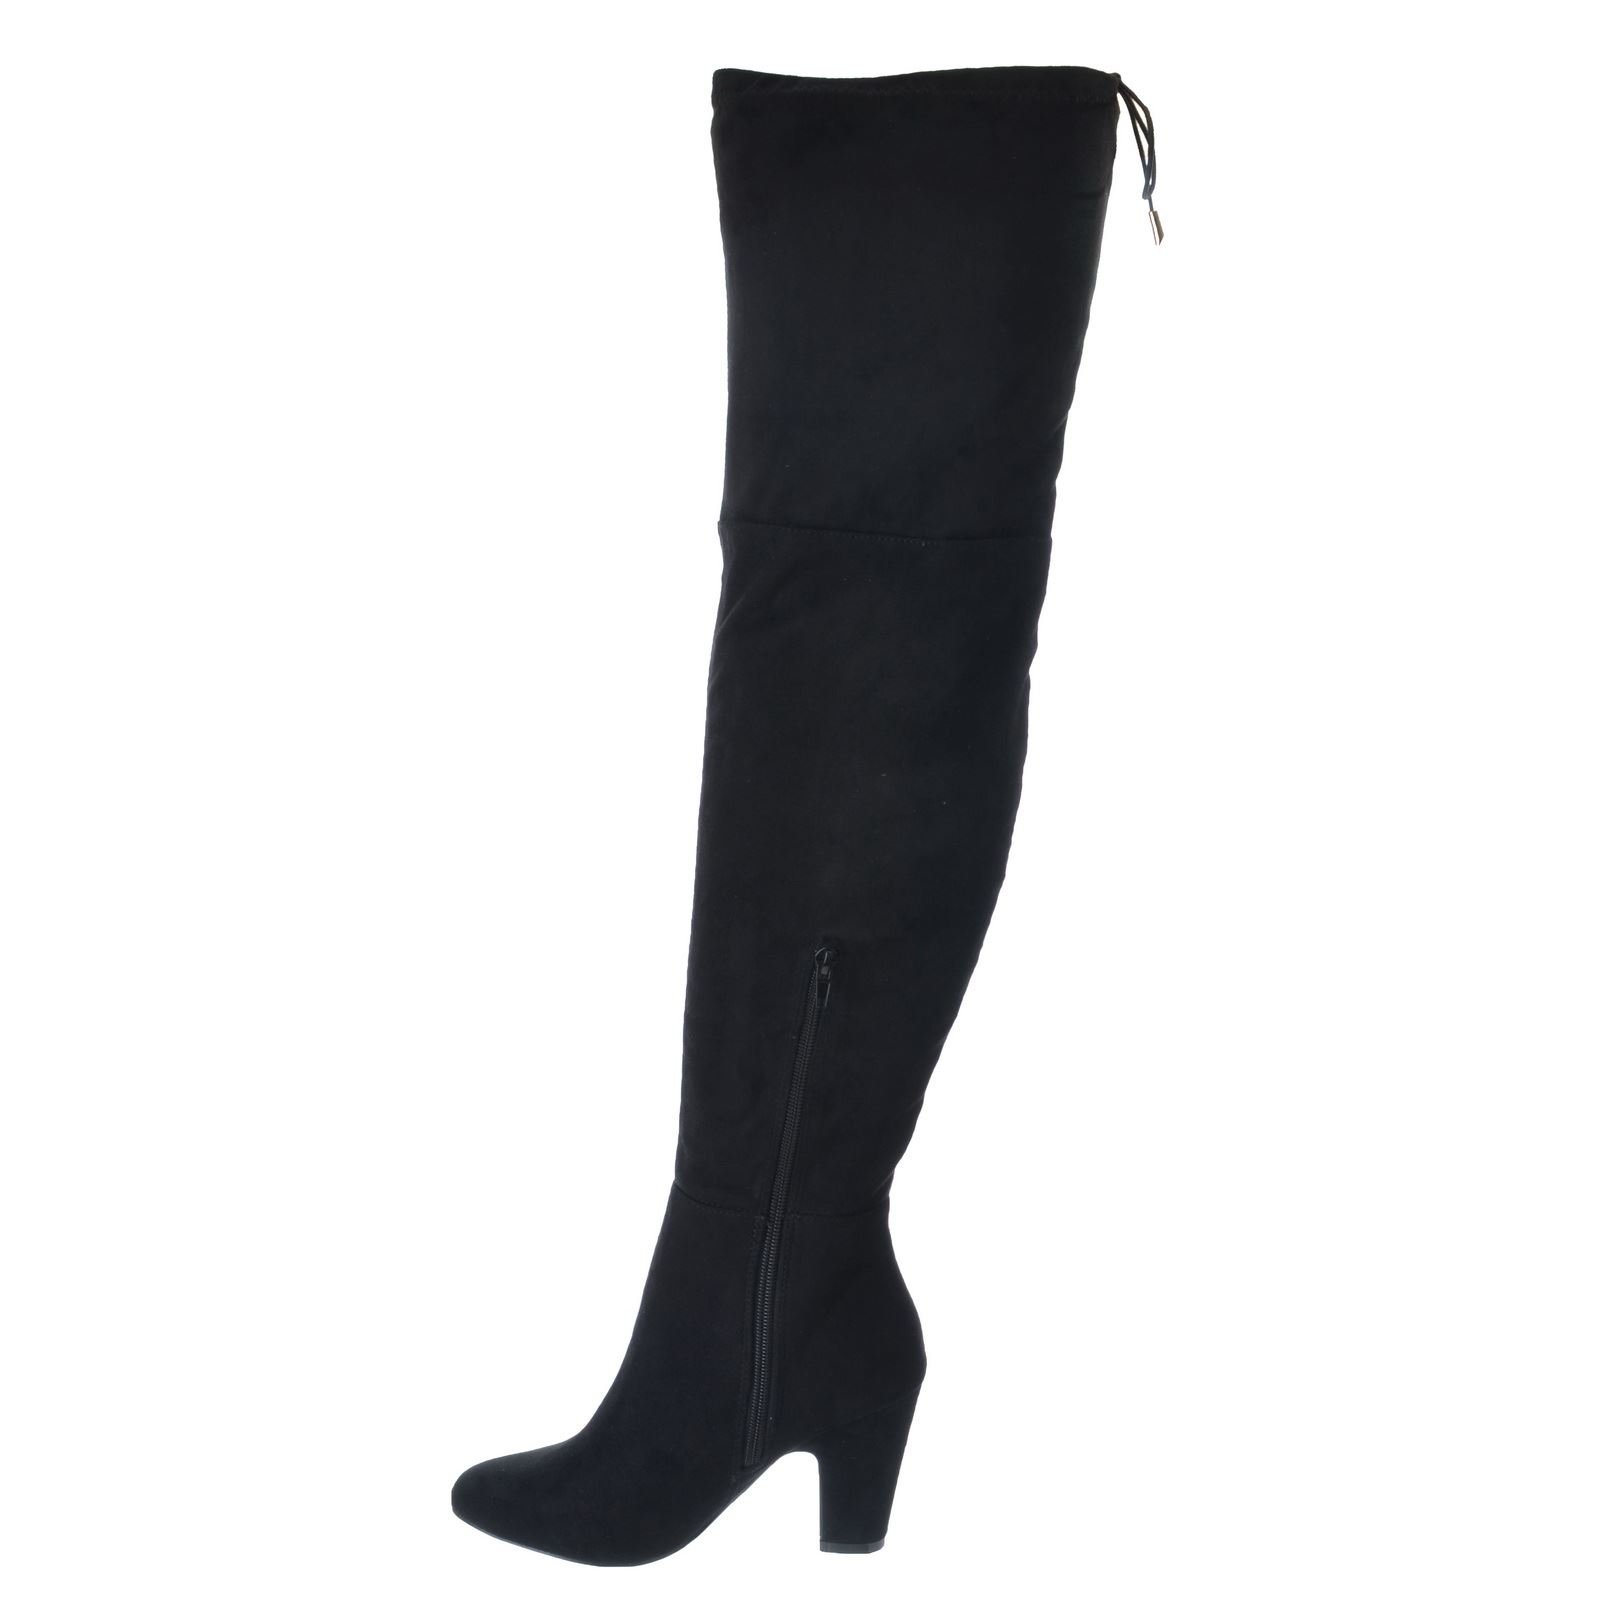 64c5f396ec8 WOMENS LADIES THIGH HIGH BOOTS OVER THE KNEE PARTY STRETCH BLOCK MID ...